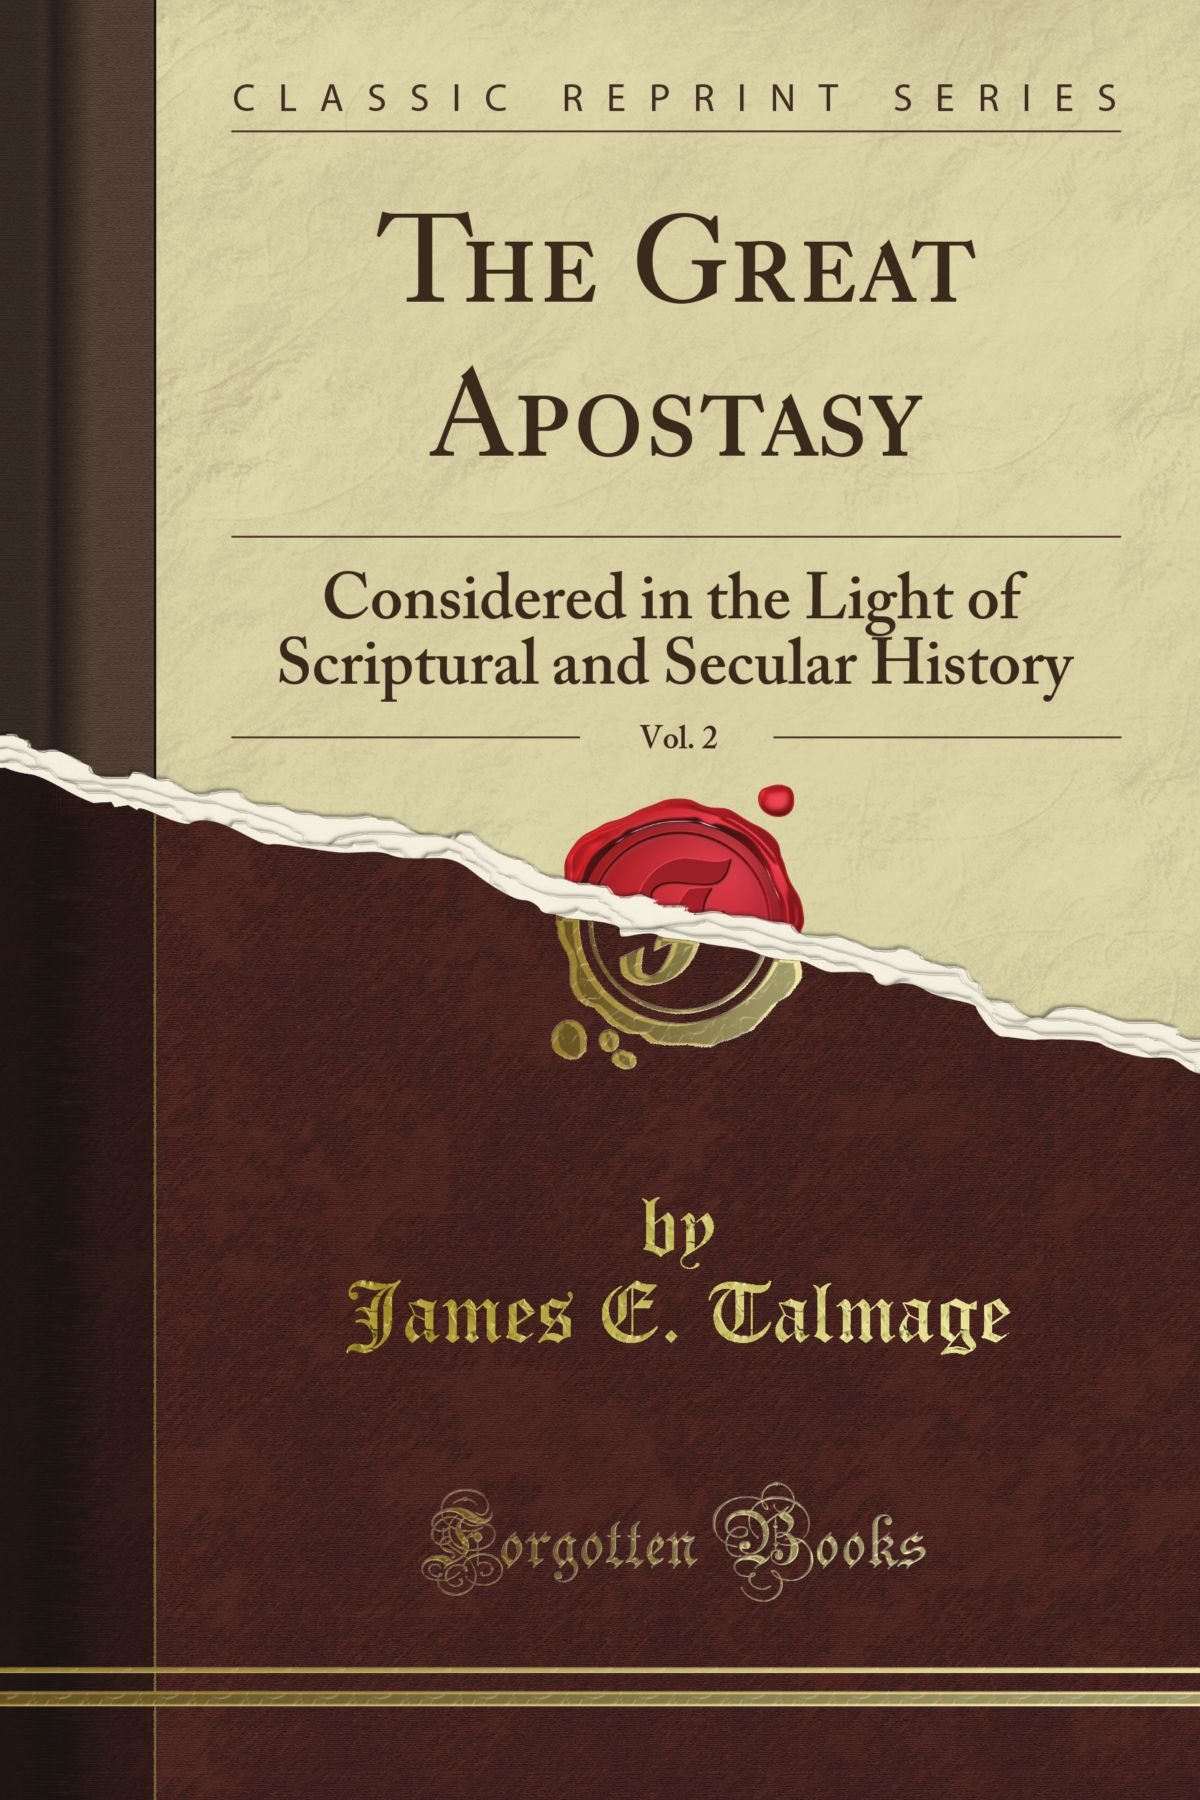 Download The Great Apostasy: Considered in the Light of Scriptural and Secular History, Vol. 2 (Classic Reprint) ebook